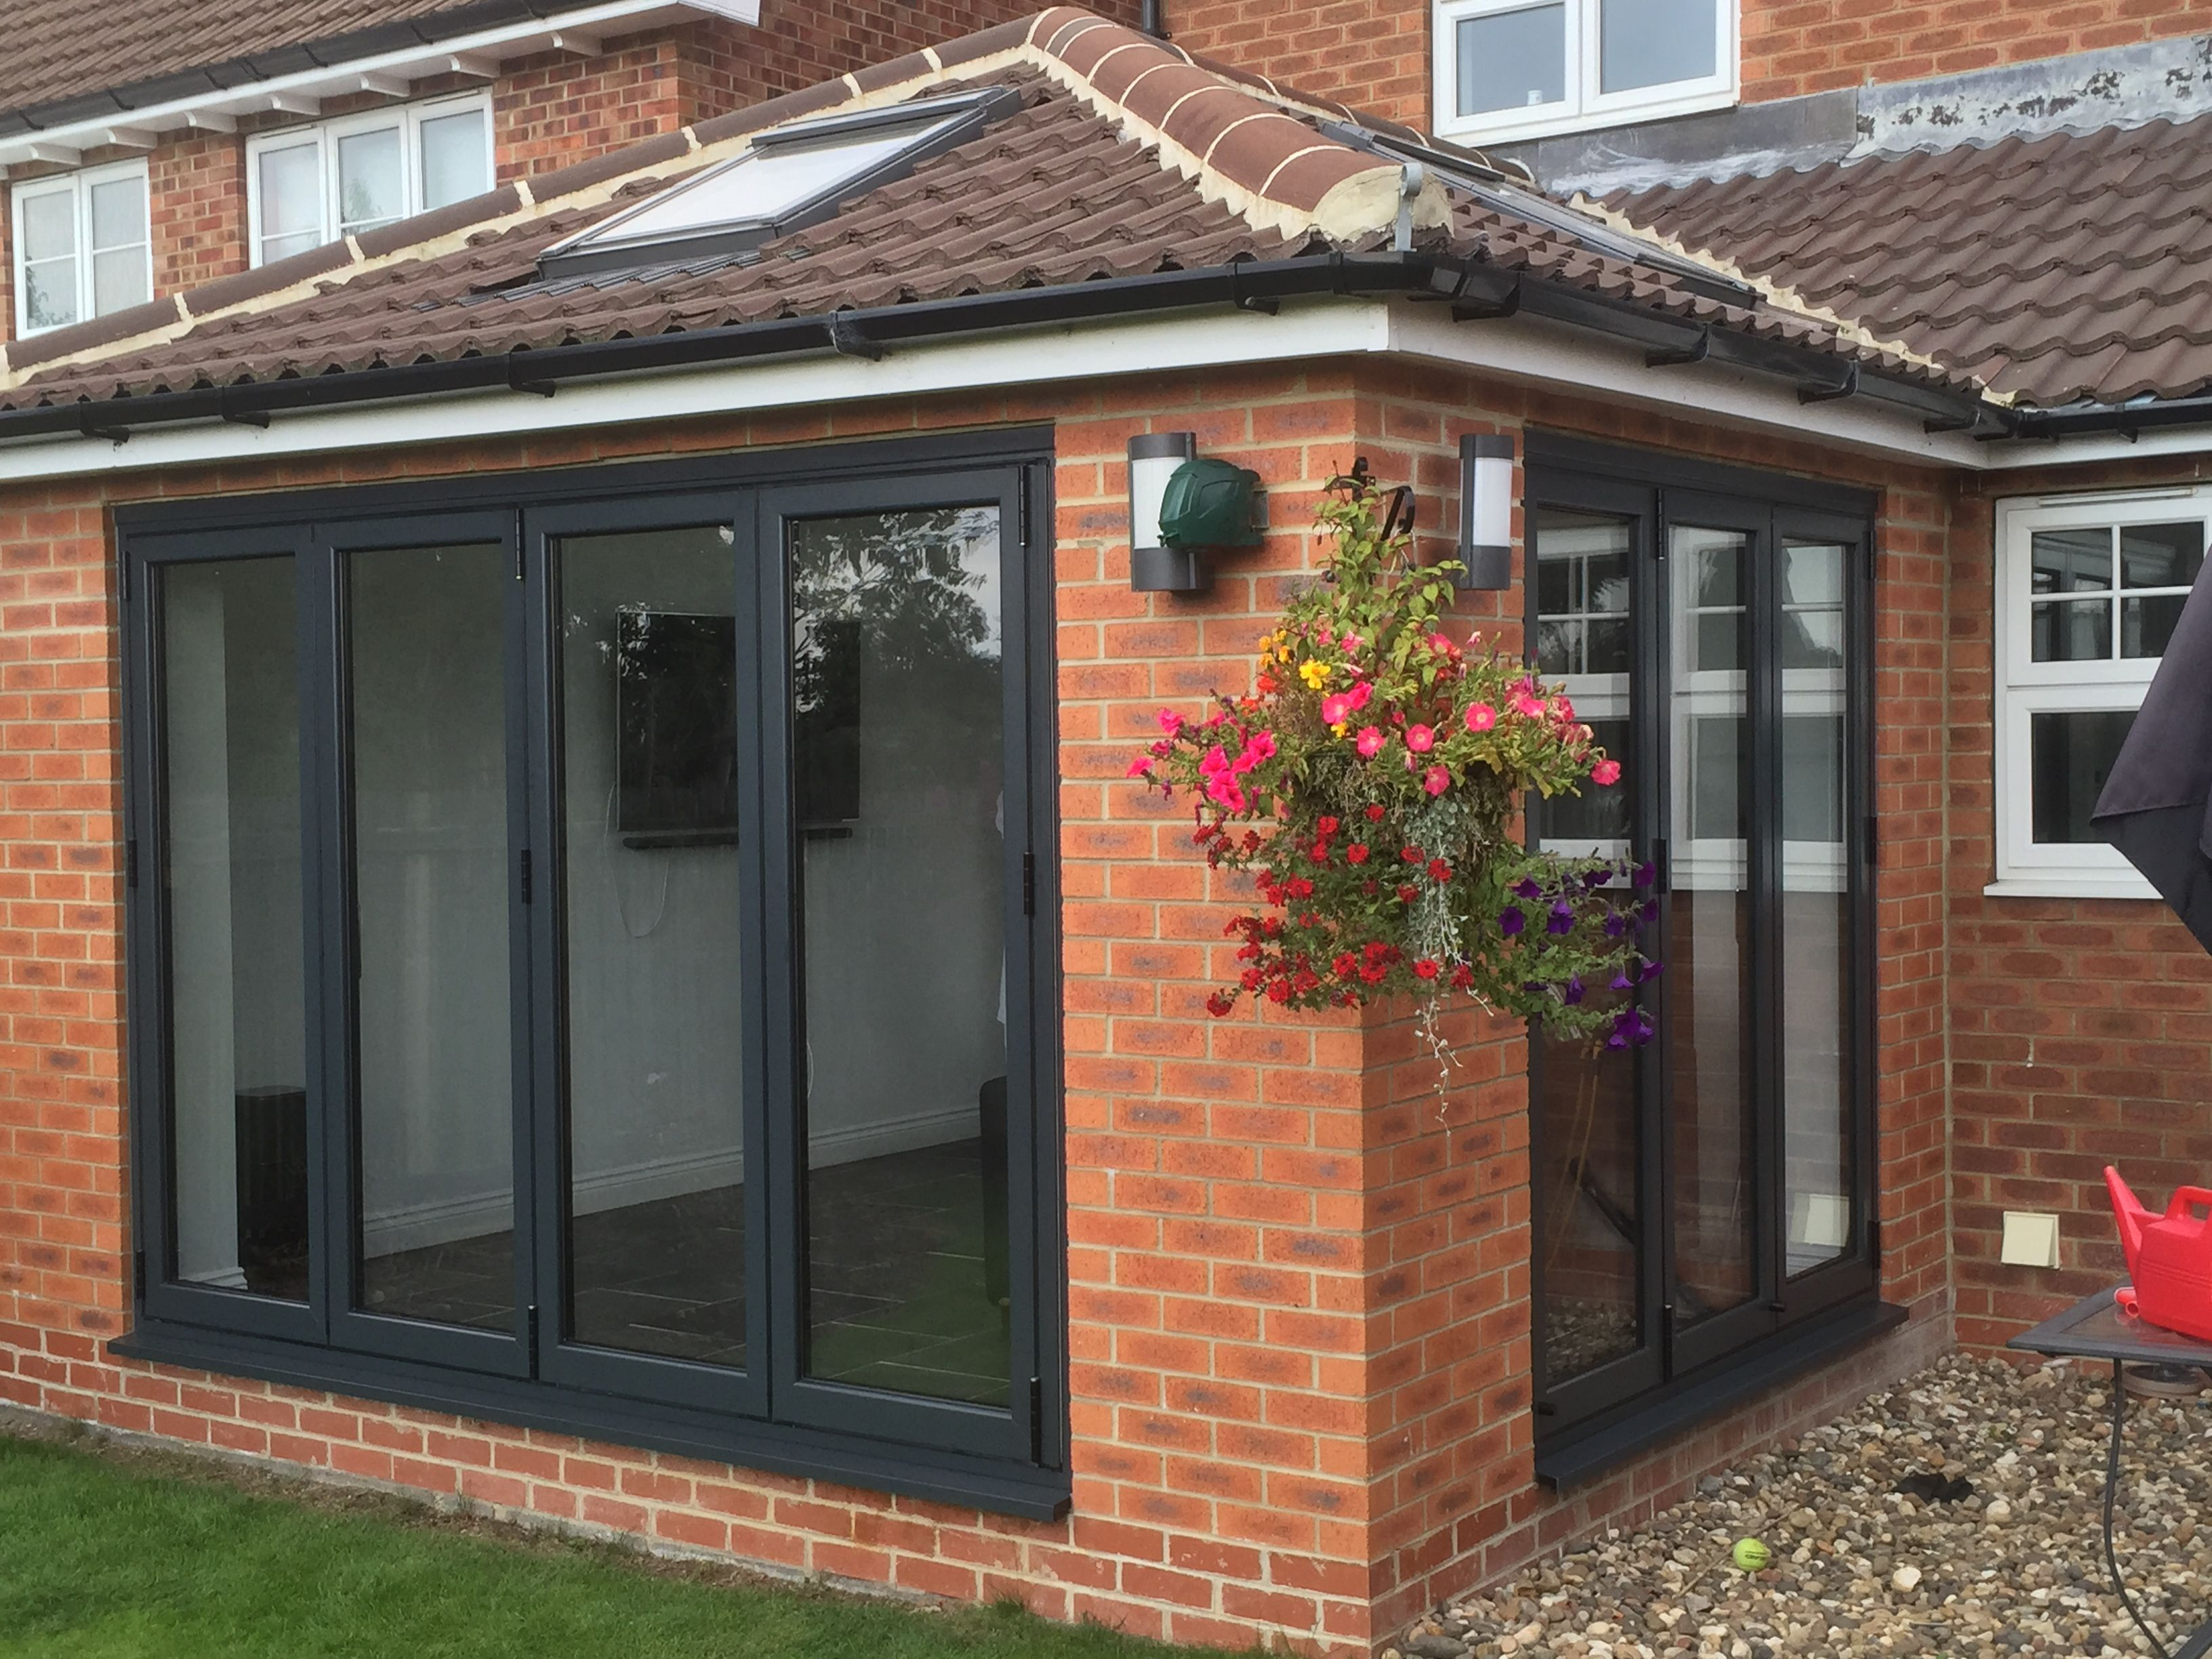 Photos Of Our Work Contact Us For A Free No Obligation Quote Sales Nationalwindowsystems Co Uk Garden Room Extensions House Extension Design Room Extensions